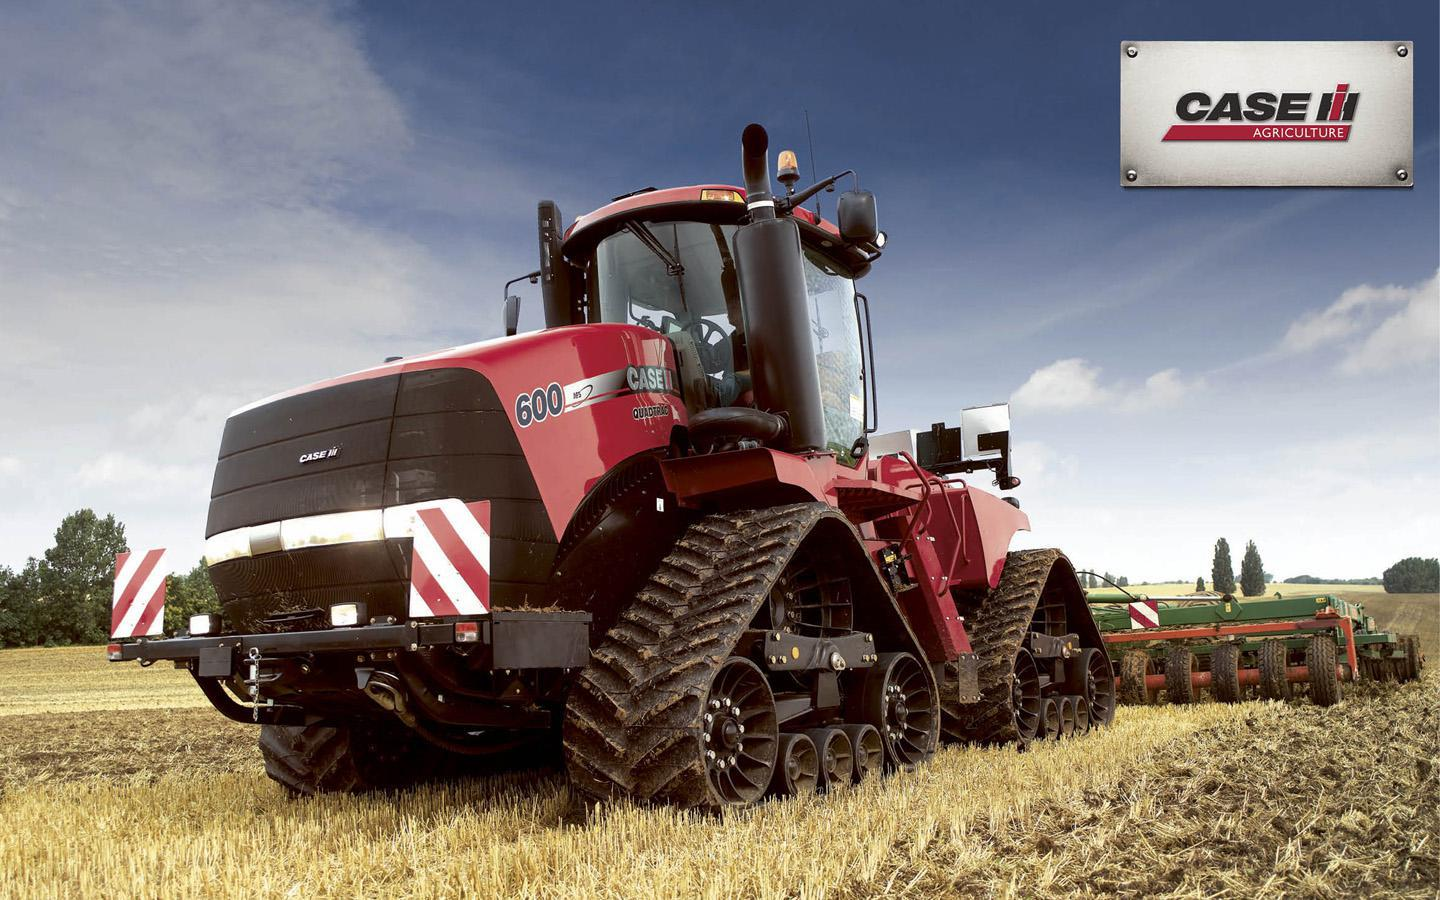 Wallpapersxl Case Ih 453180 1440x900